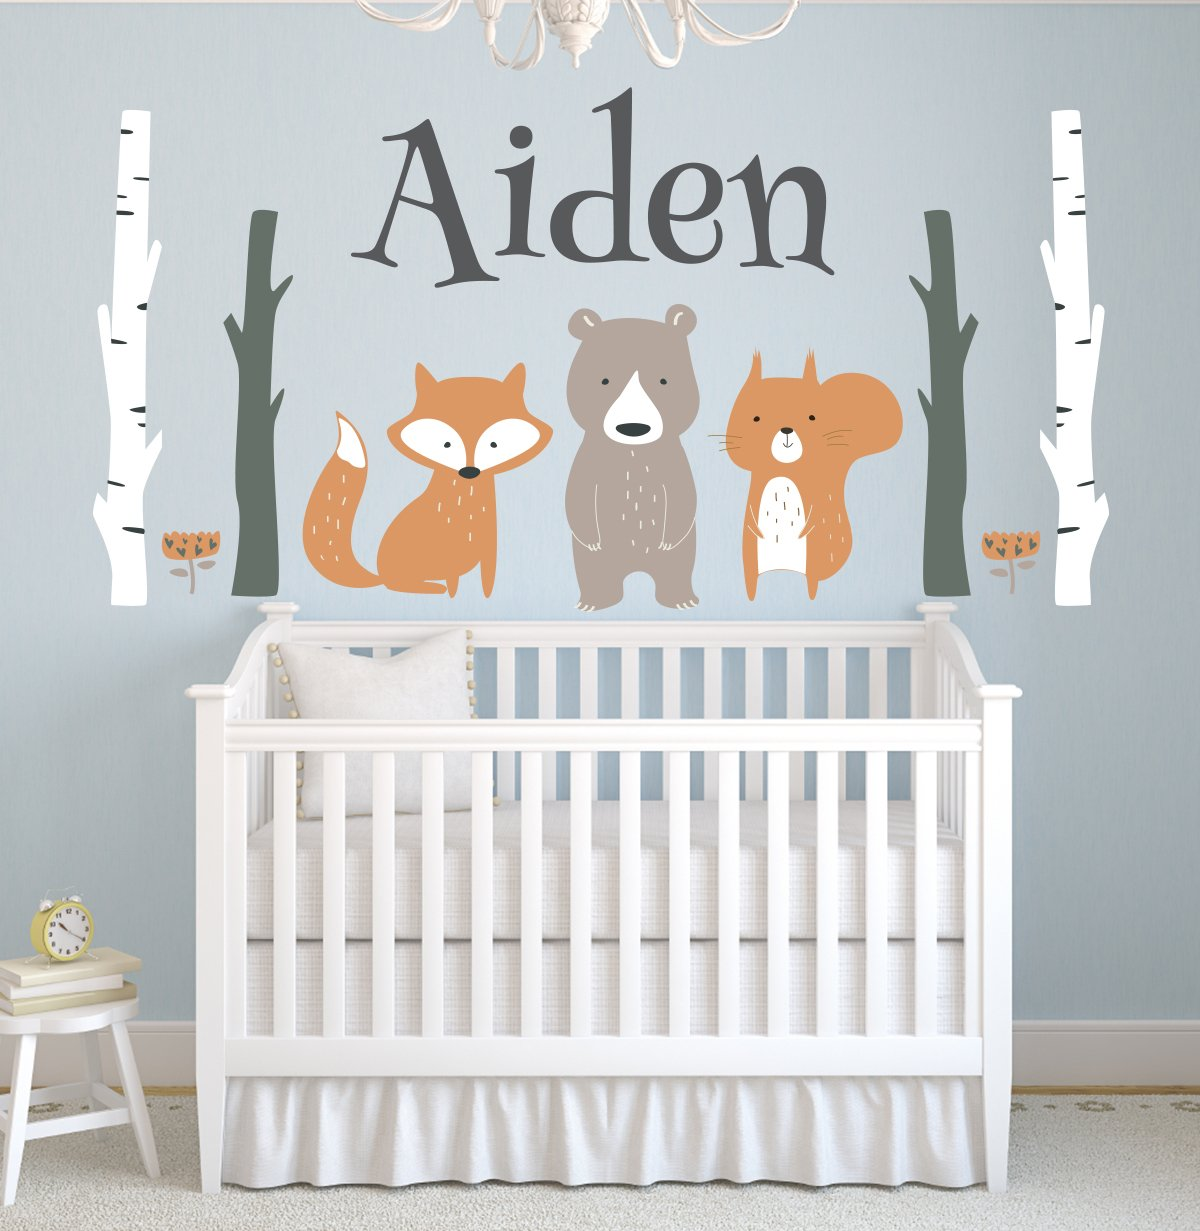 Custom Woodland Animals Name Wall Decal Forest Nursery Baby Room Mural Art Decor Vinyl Sticker LD10 (42''W x 22''H) by Lovely Decals World LLC (Image #1)